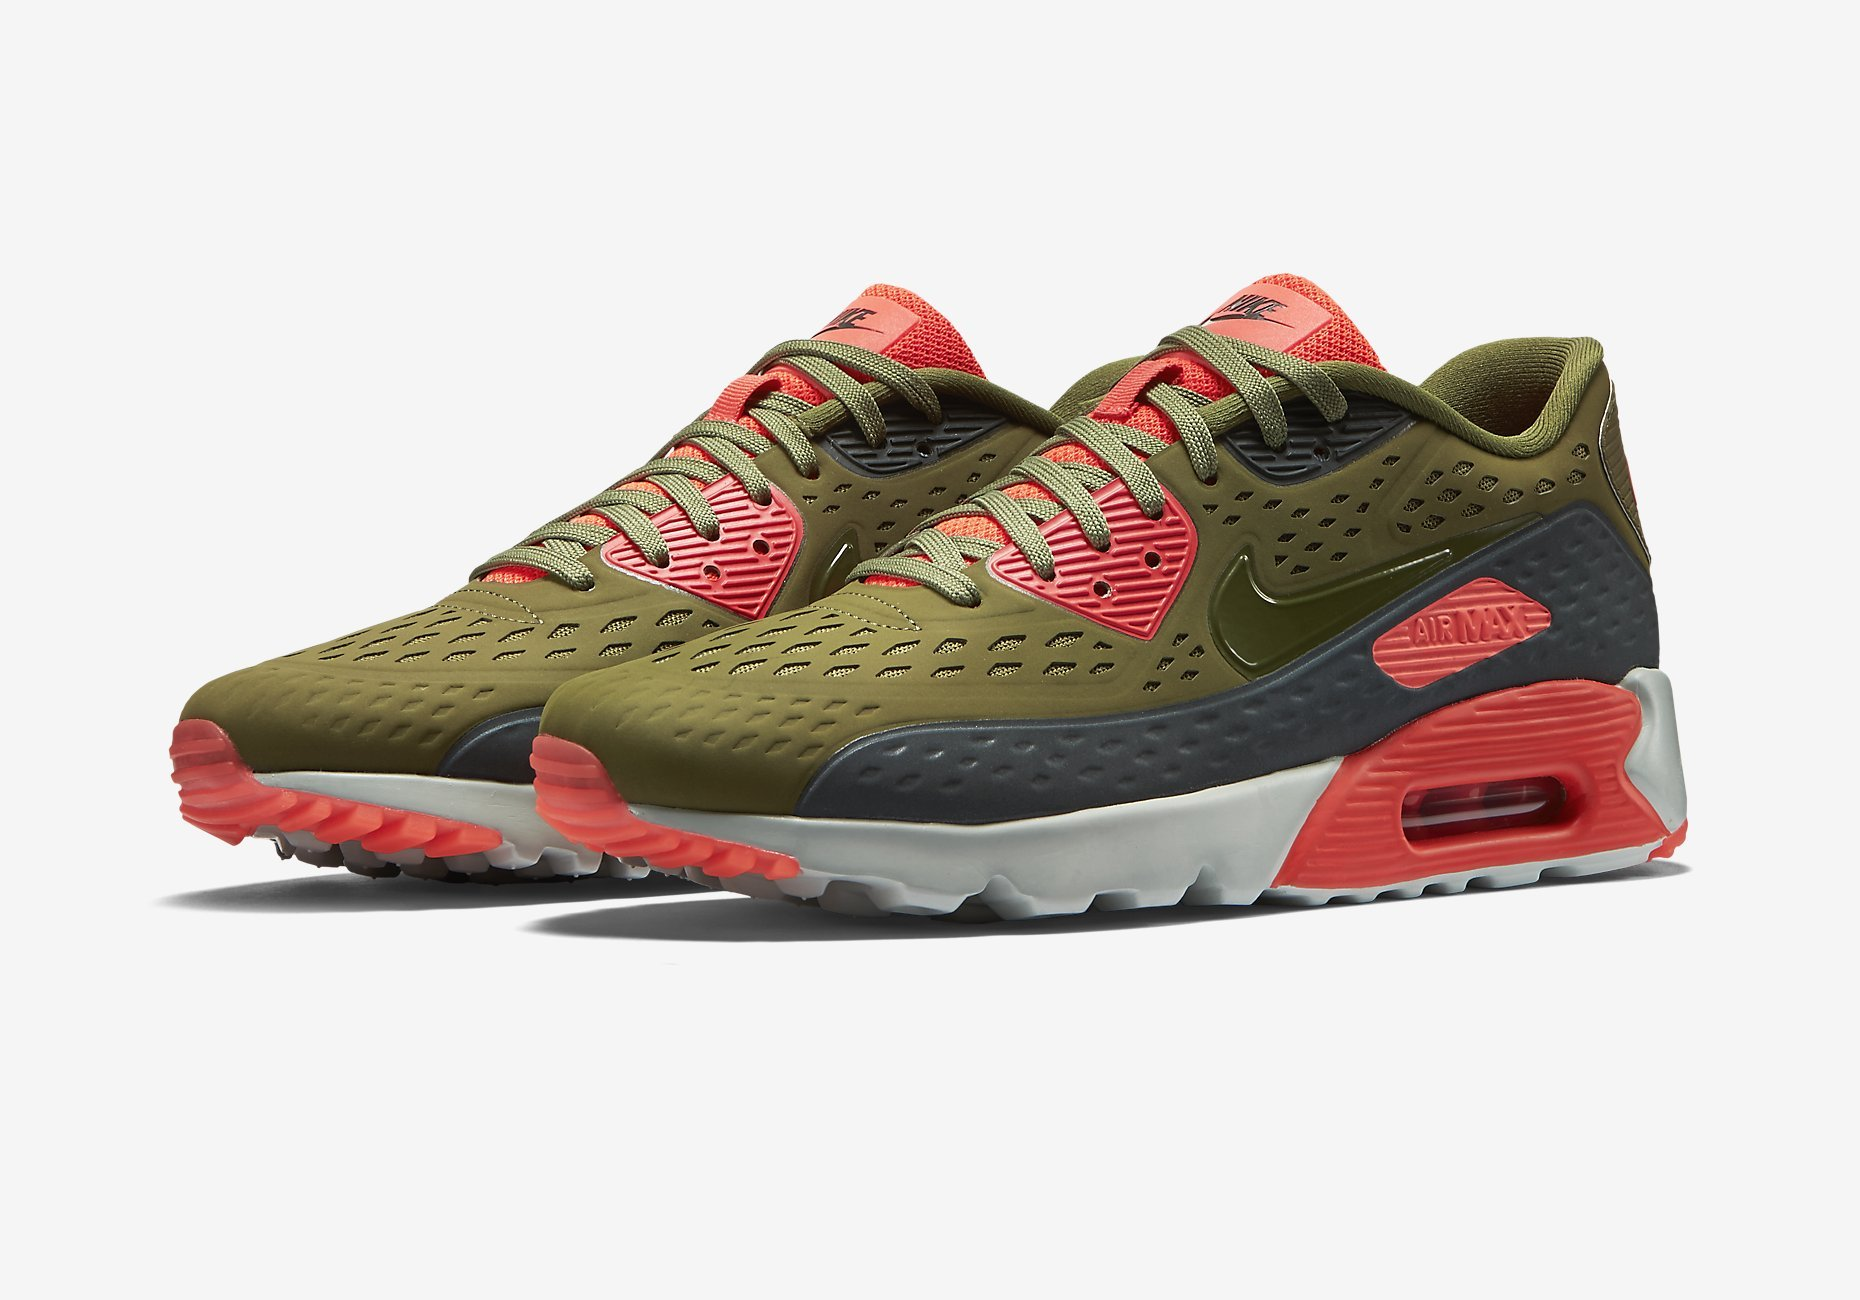 ca2cd5477720 Click here to purchase the Nike Air Max 90 Ultra Breathe on eBay